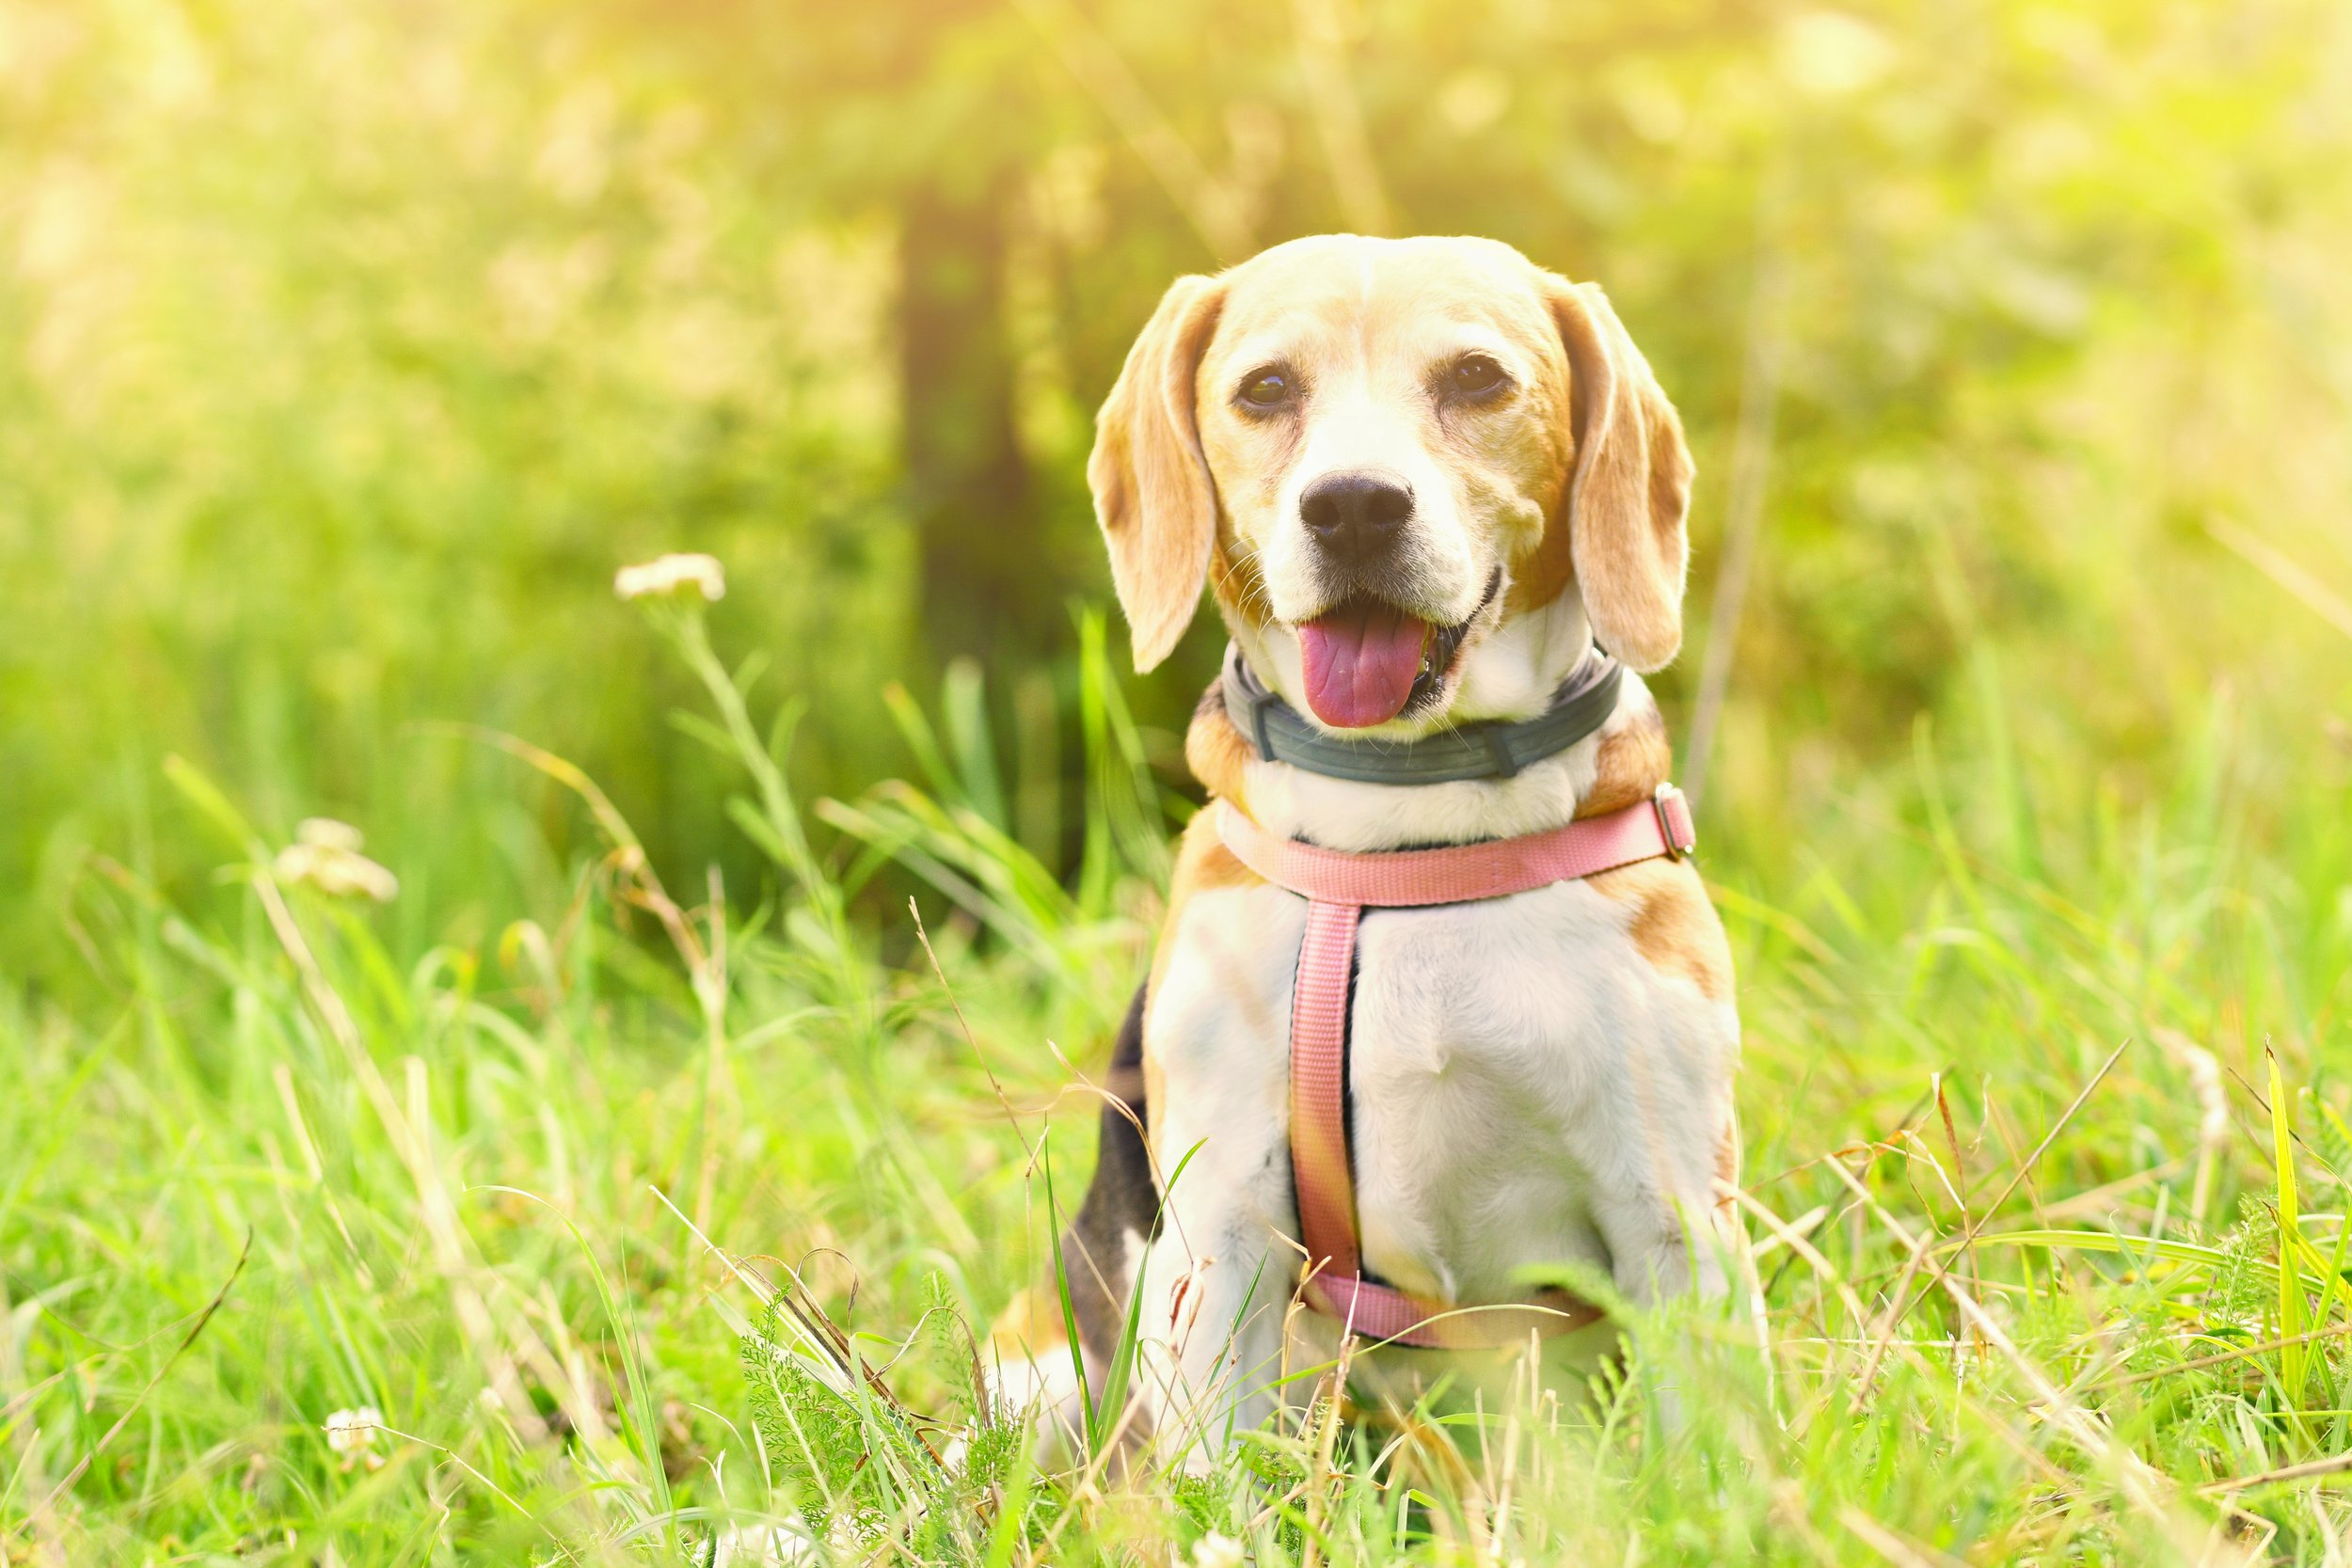 cute dog outside grass with sun.jpg